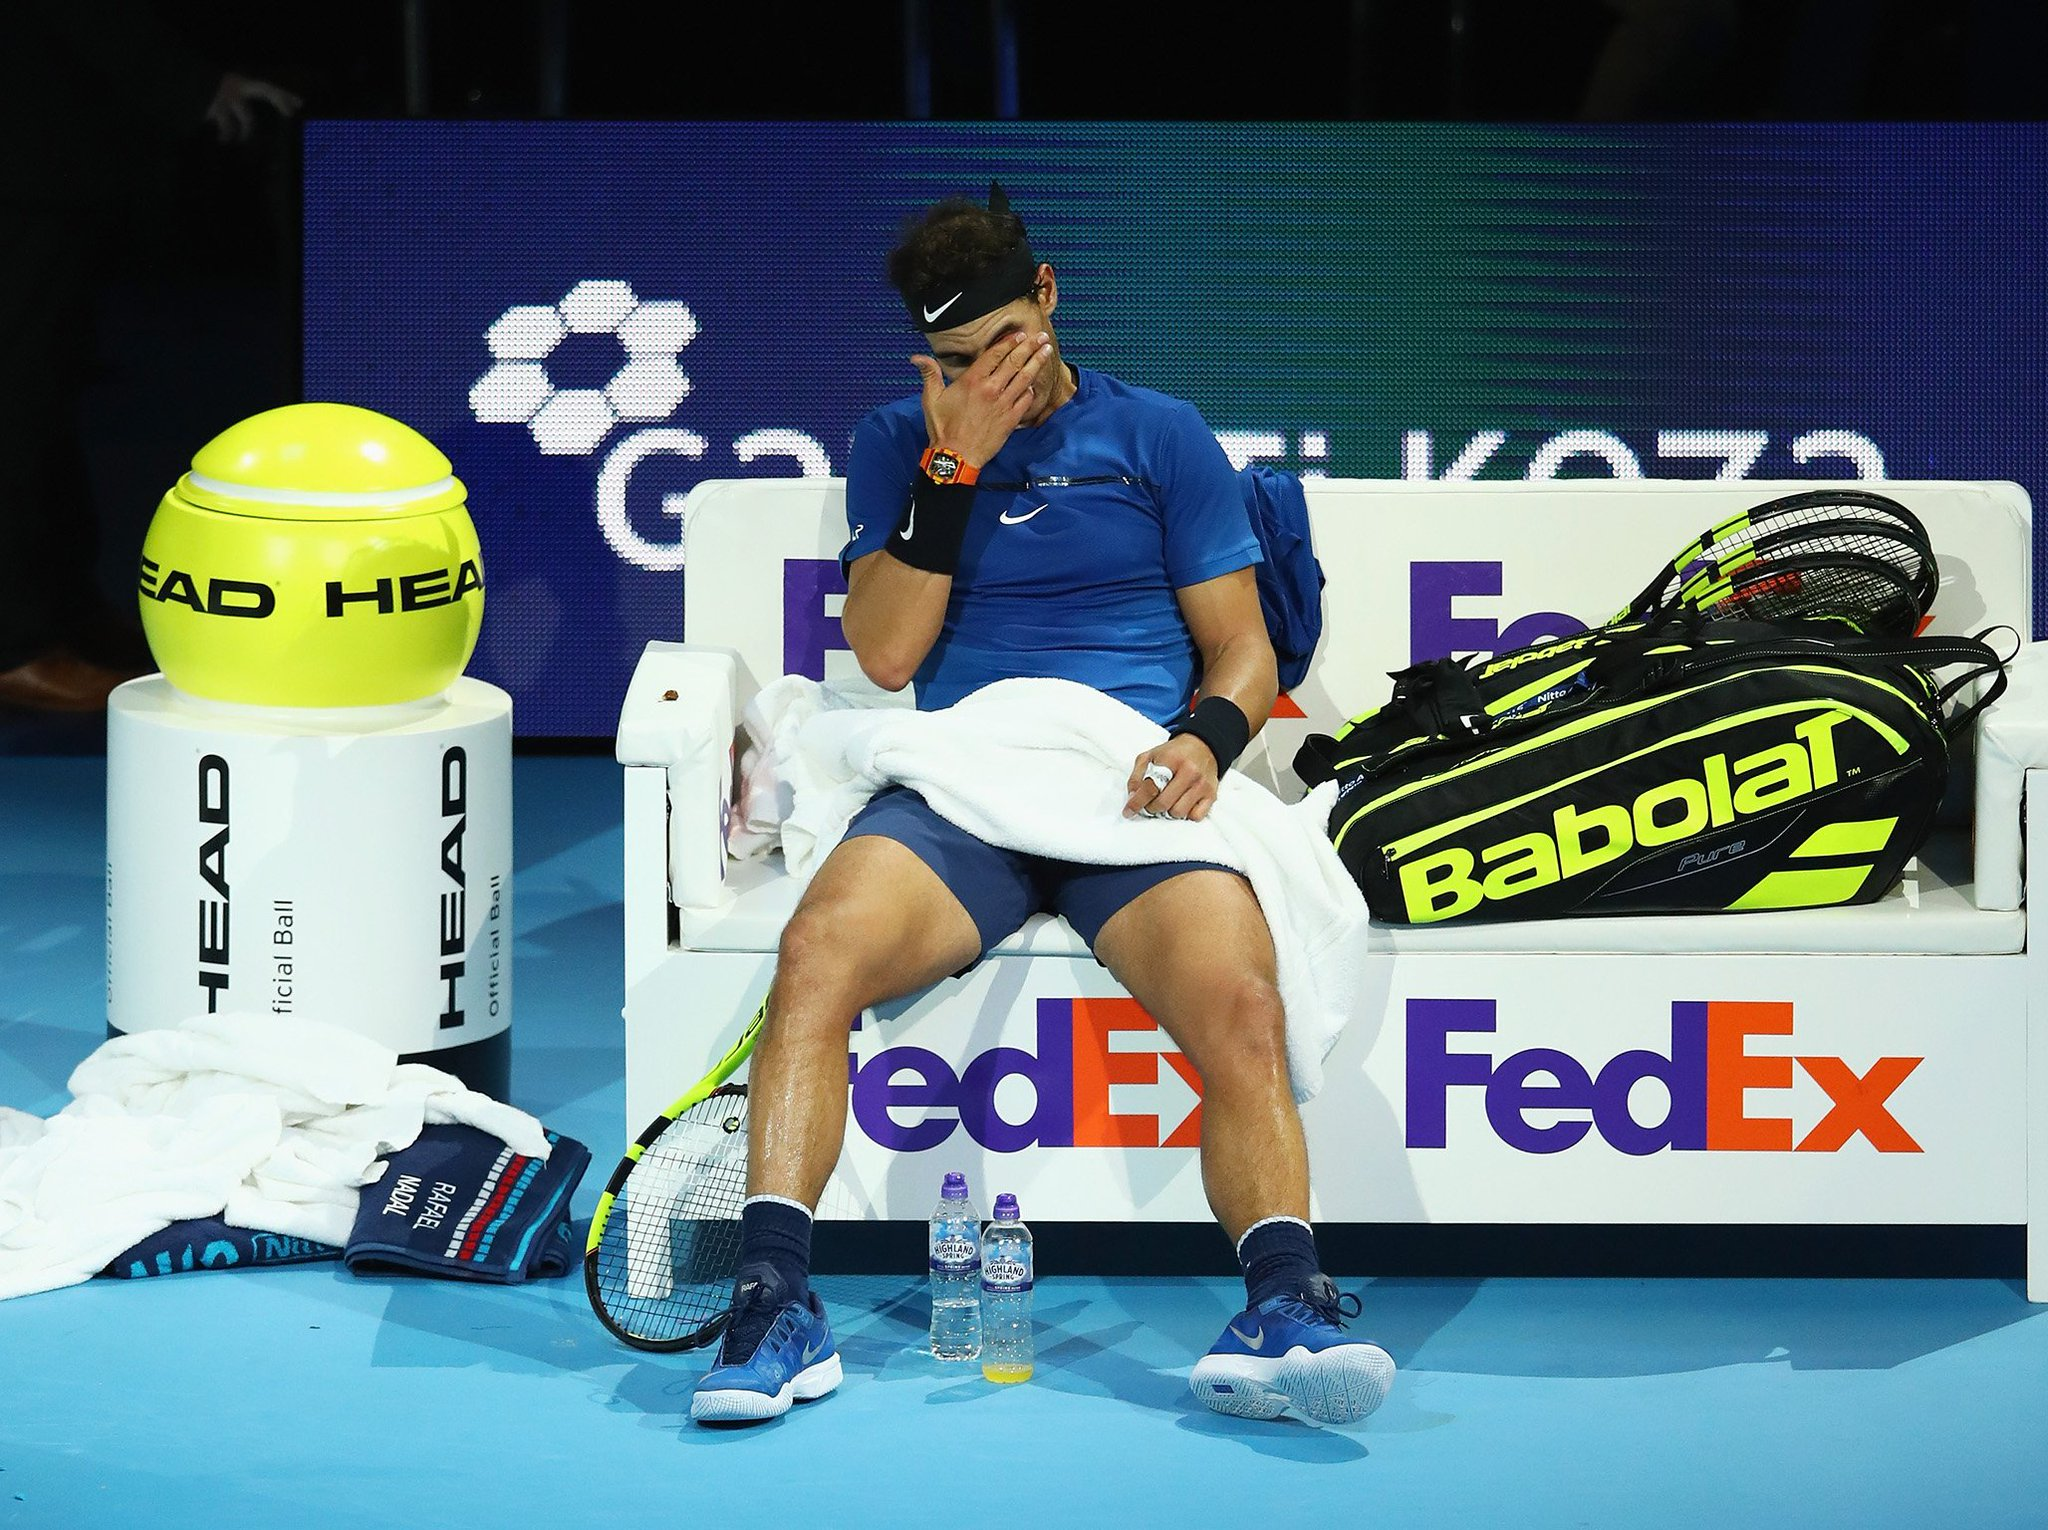 Rafael Nadal's season is over https://t.co/XCfVY1KXYM https://t.co/YC7SzztEZv